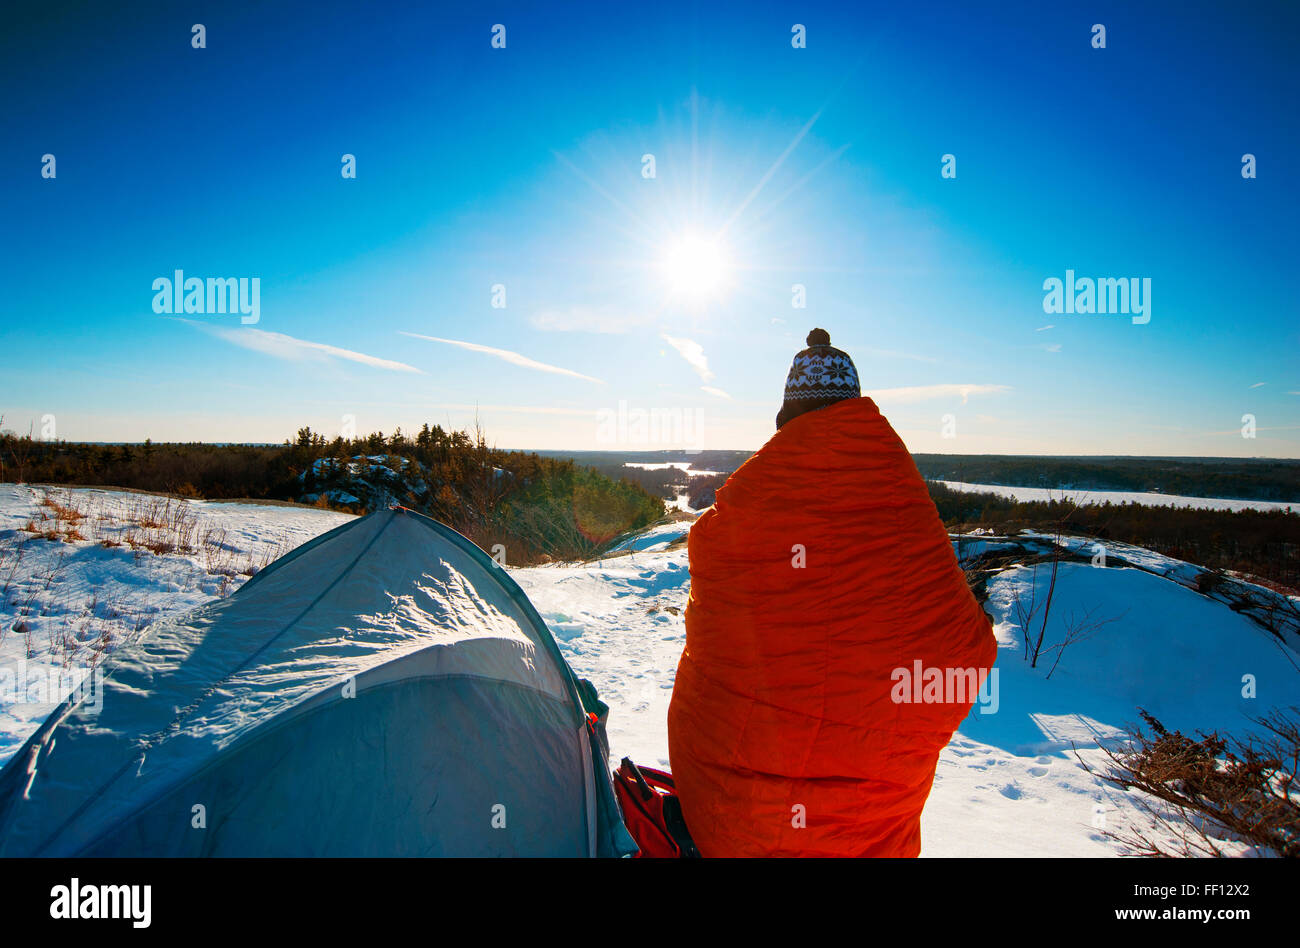 Excursionista de pie al nevado camping Foto de stock